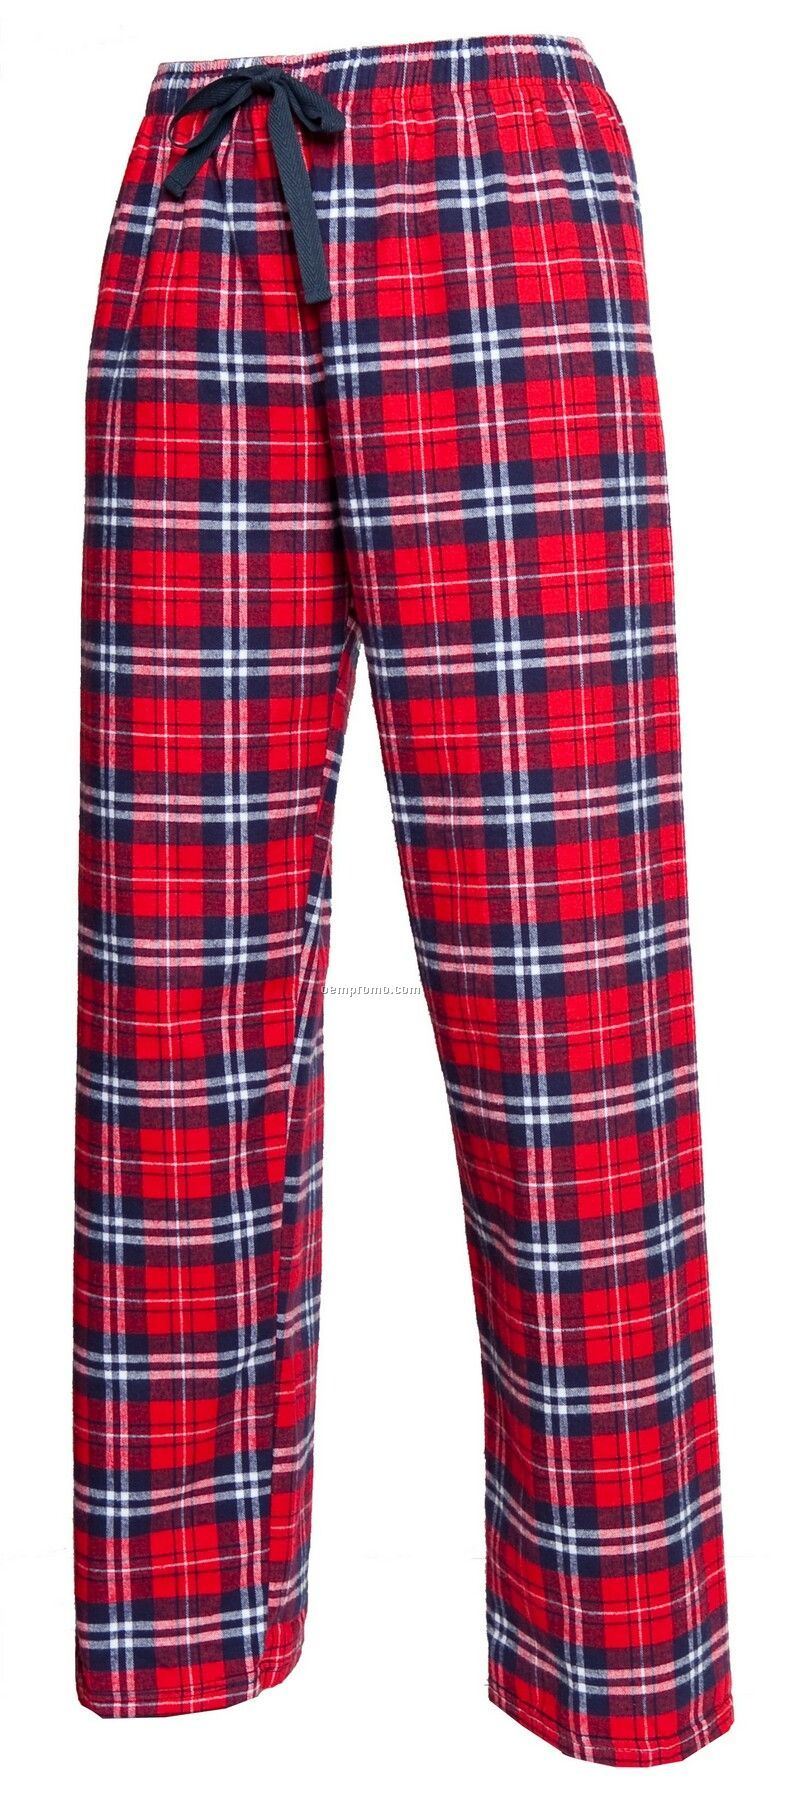 Adult Team Pride Flannel Pant In Navy Blue & Red Plaid